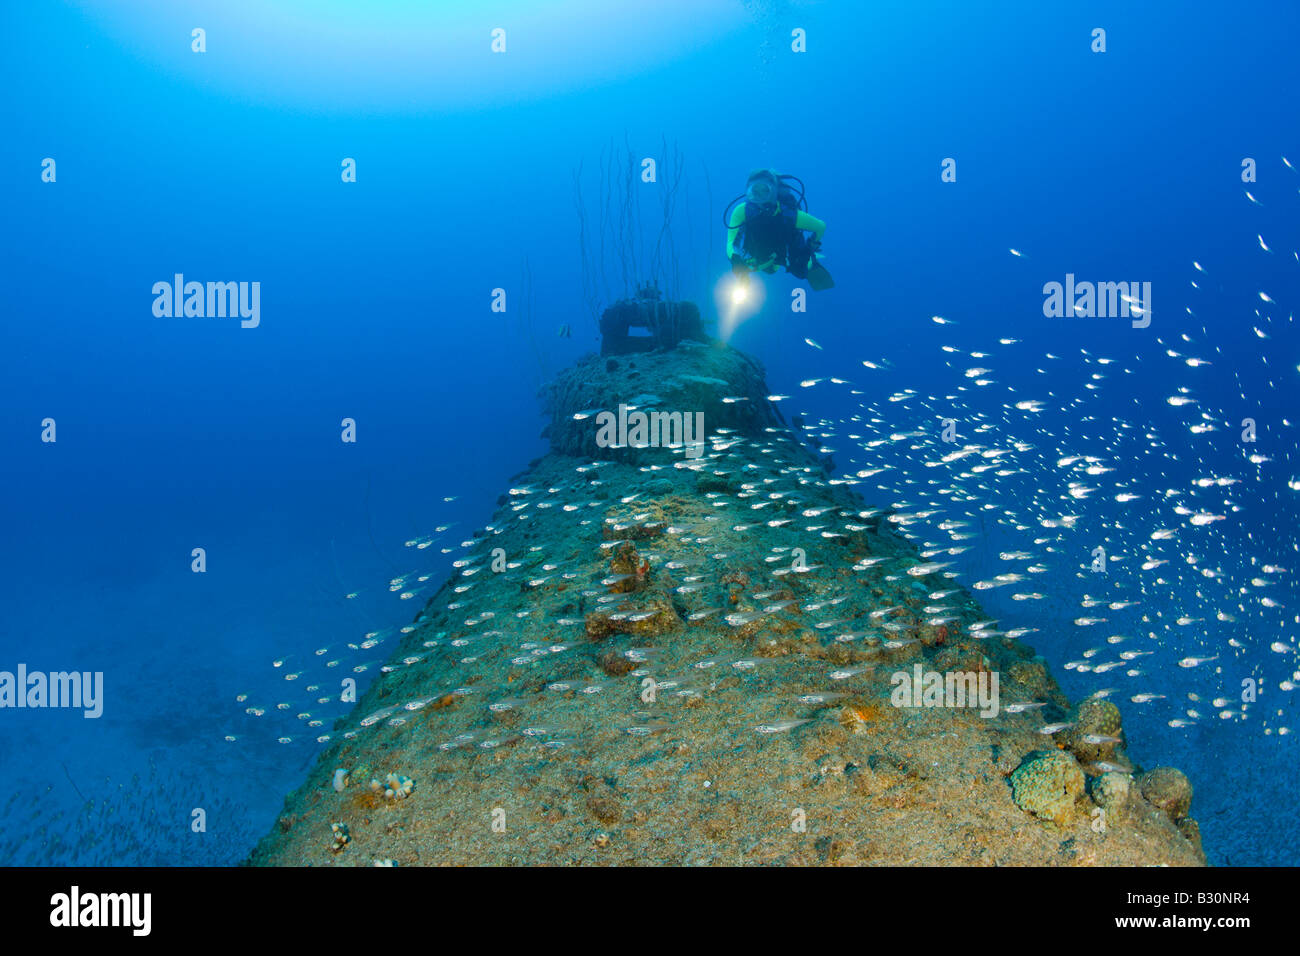 Diver over Stern of USS Apogon Submarine Marshall Islands Bikini Atoll Micronesia Pacific Ocean - Stock Image